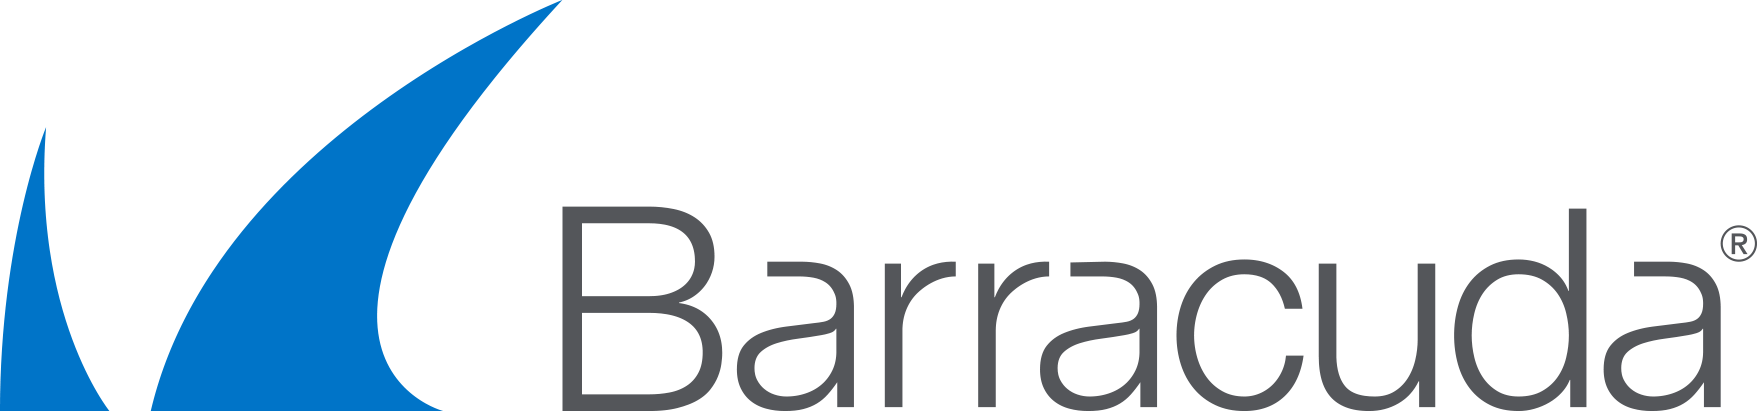 Barracuda Networks Seek